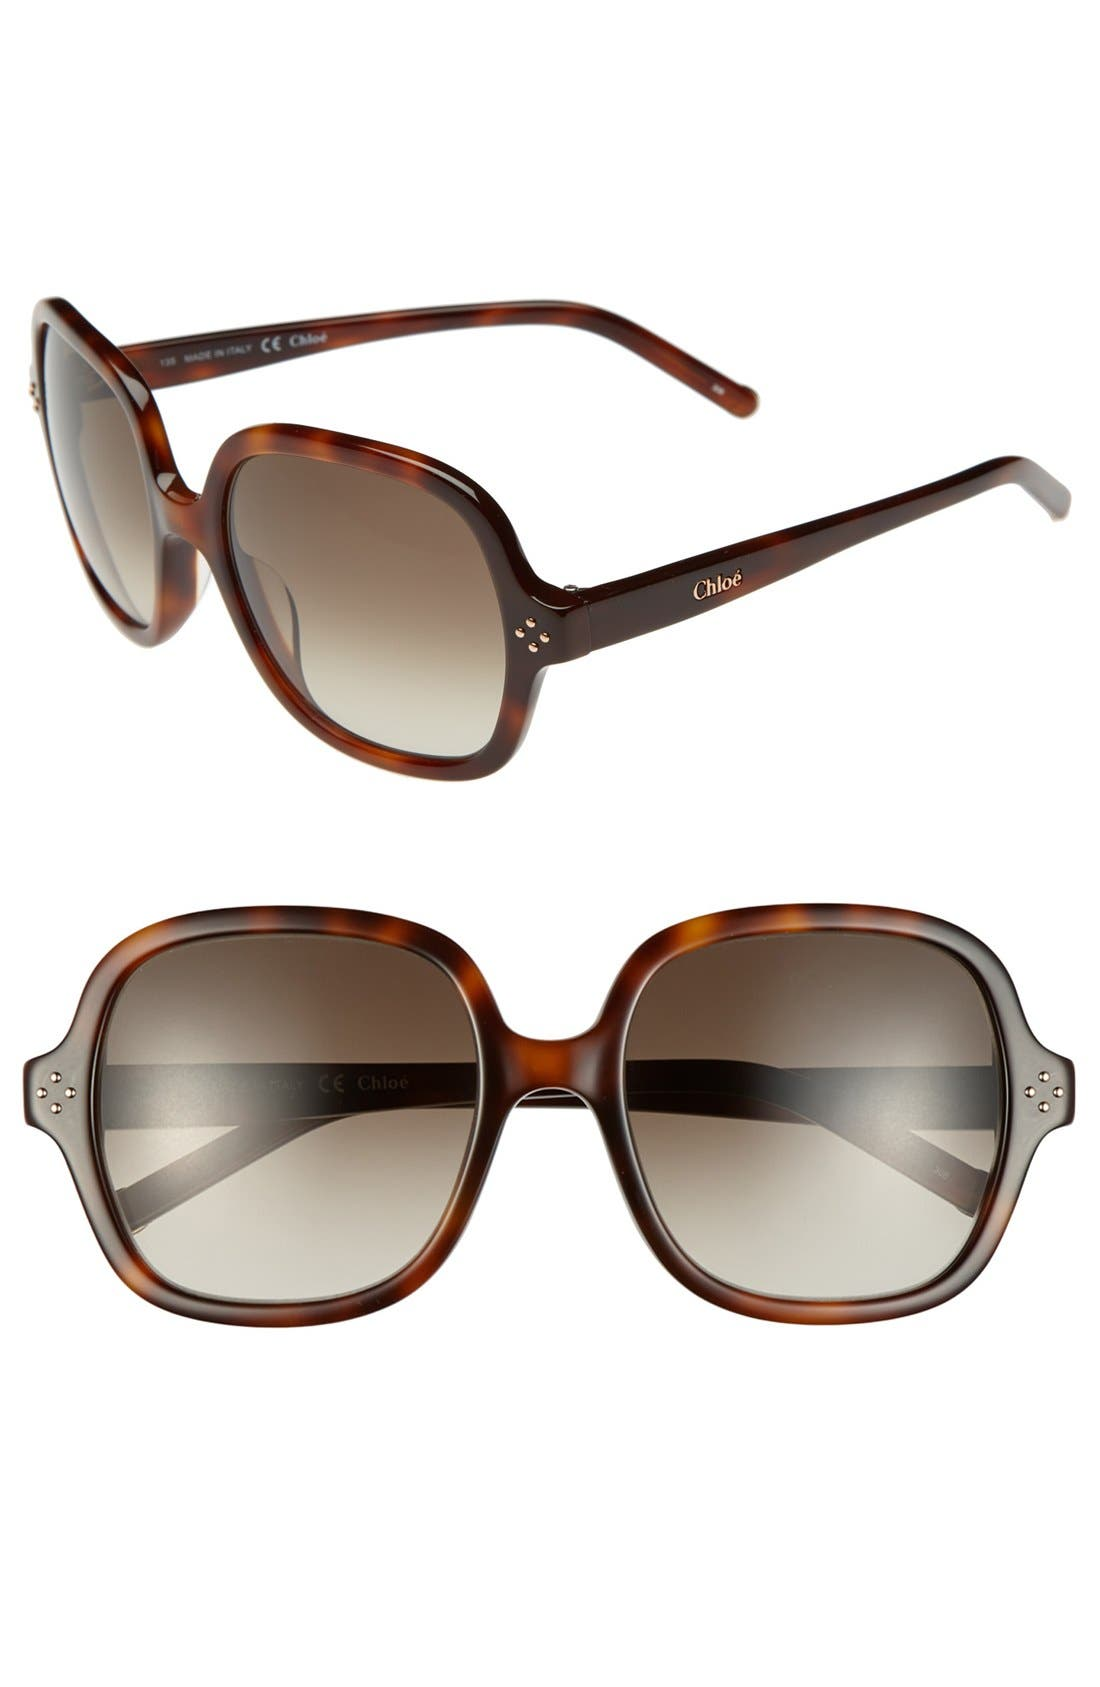 Main Image - Chloé 'Boxwood' 55mm Sunglasses